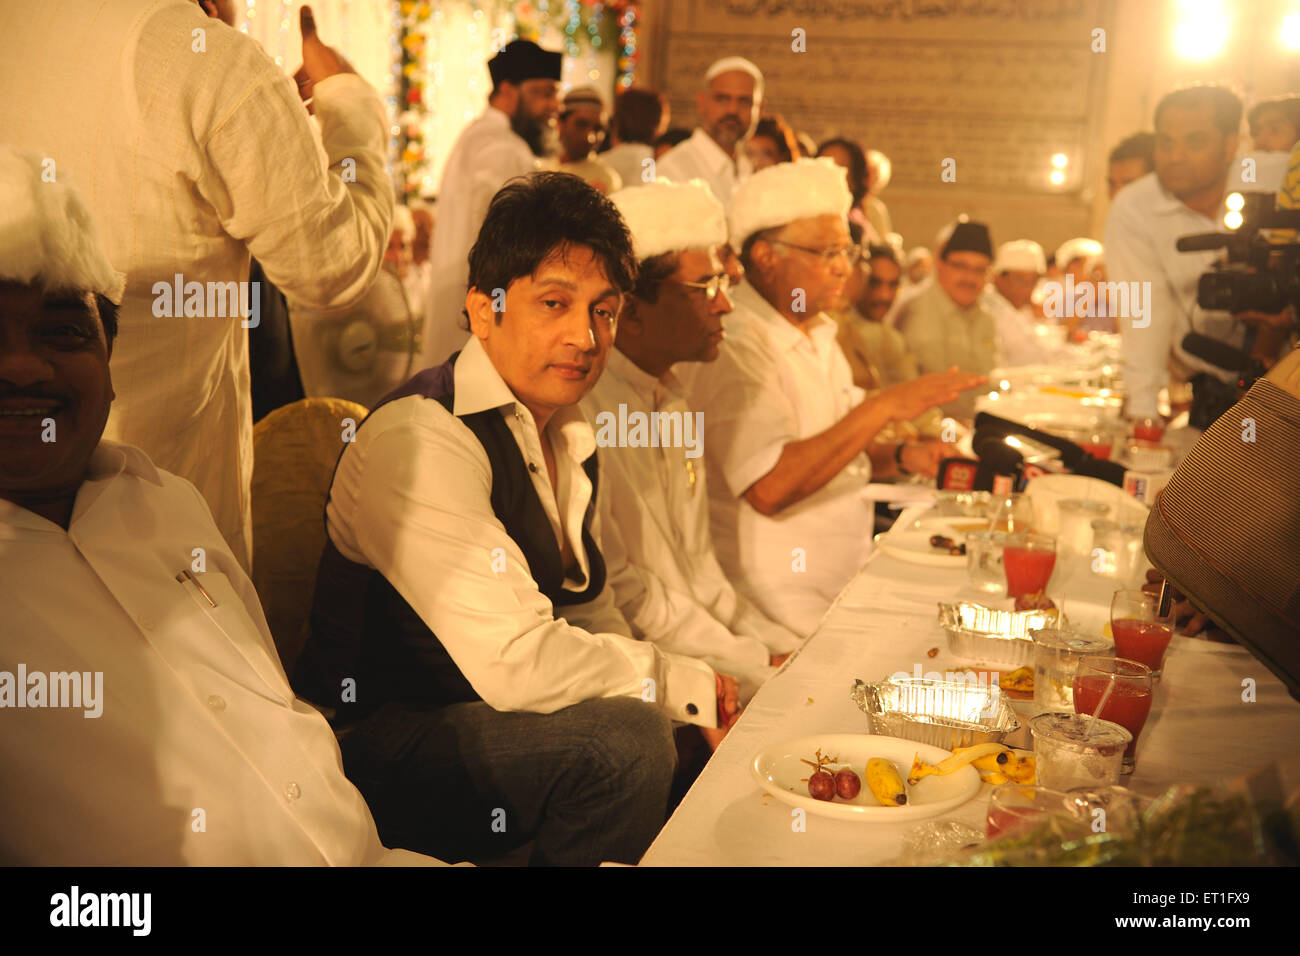 Actor and member of Indian national congress Shekhar Suman ; India NO MR - Stock Image